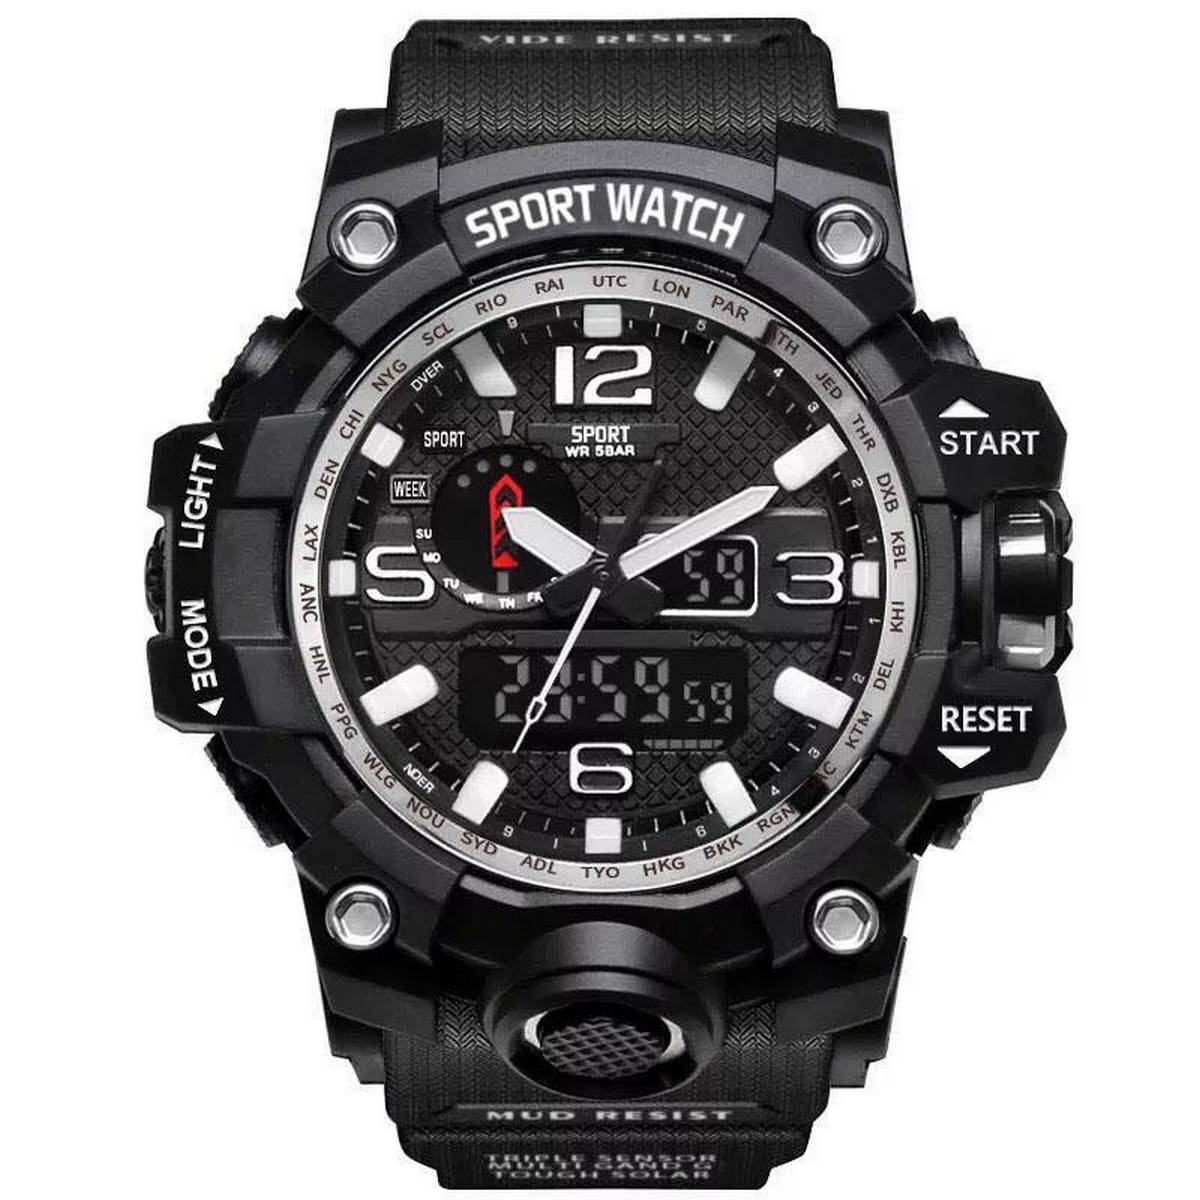 Mens Watches 2020. Hot Sale Fashion Watch Men G Style Waterproof Sports Military Watches Shock Luxury Analog Digital Sports Watches